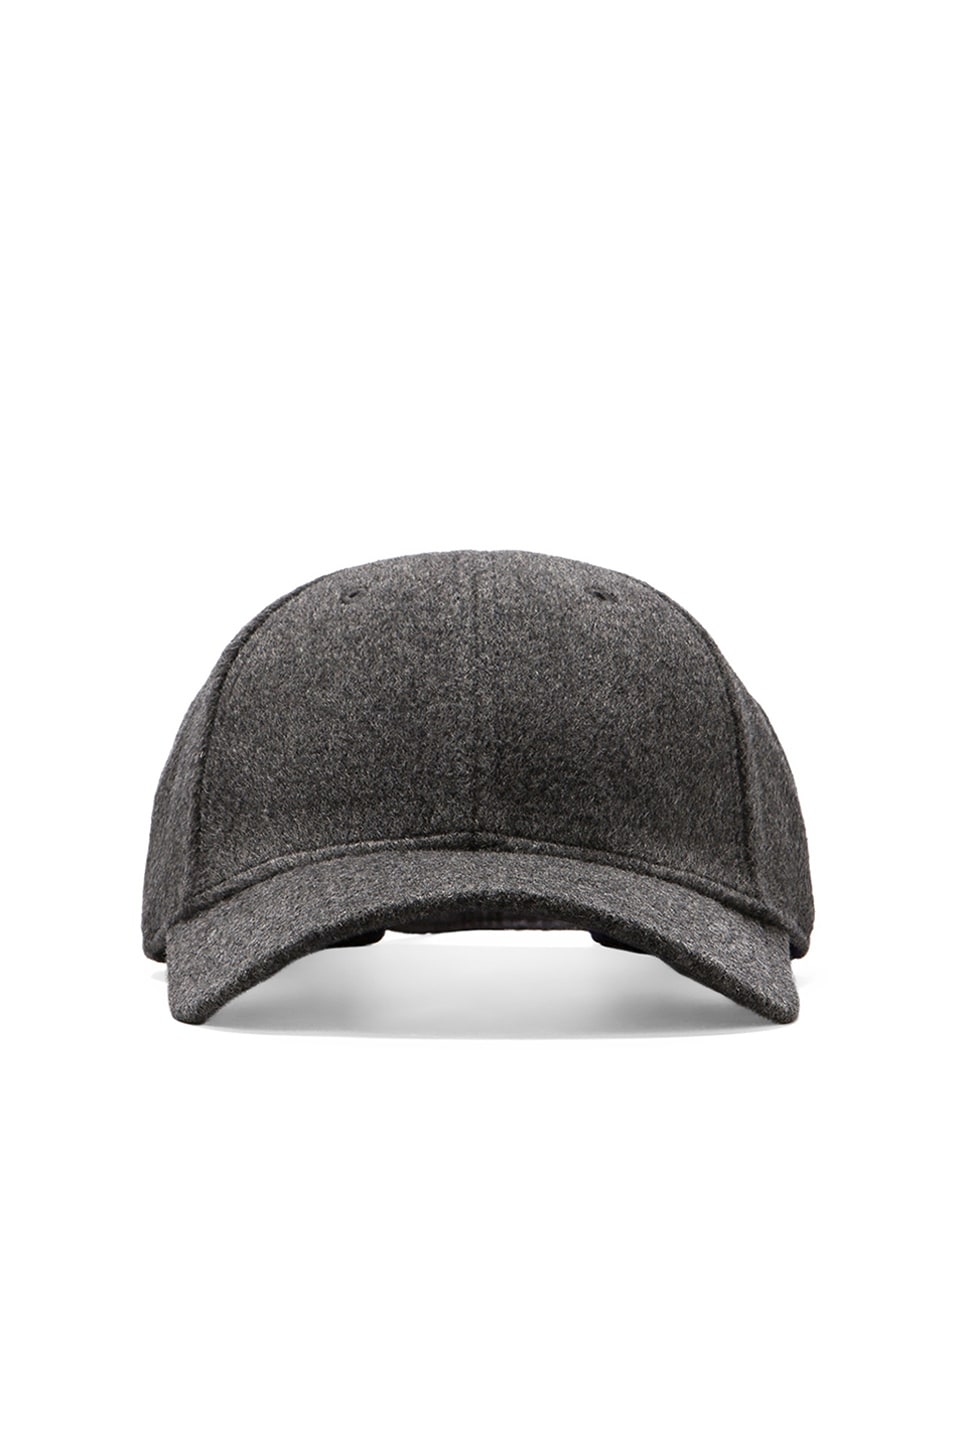 Luxe Cashmere Blend Cap by Gents Co.